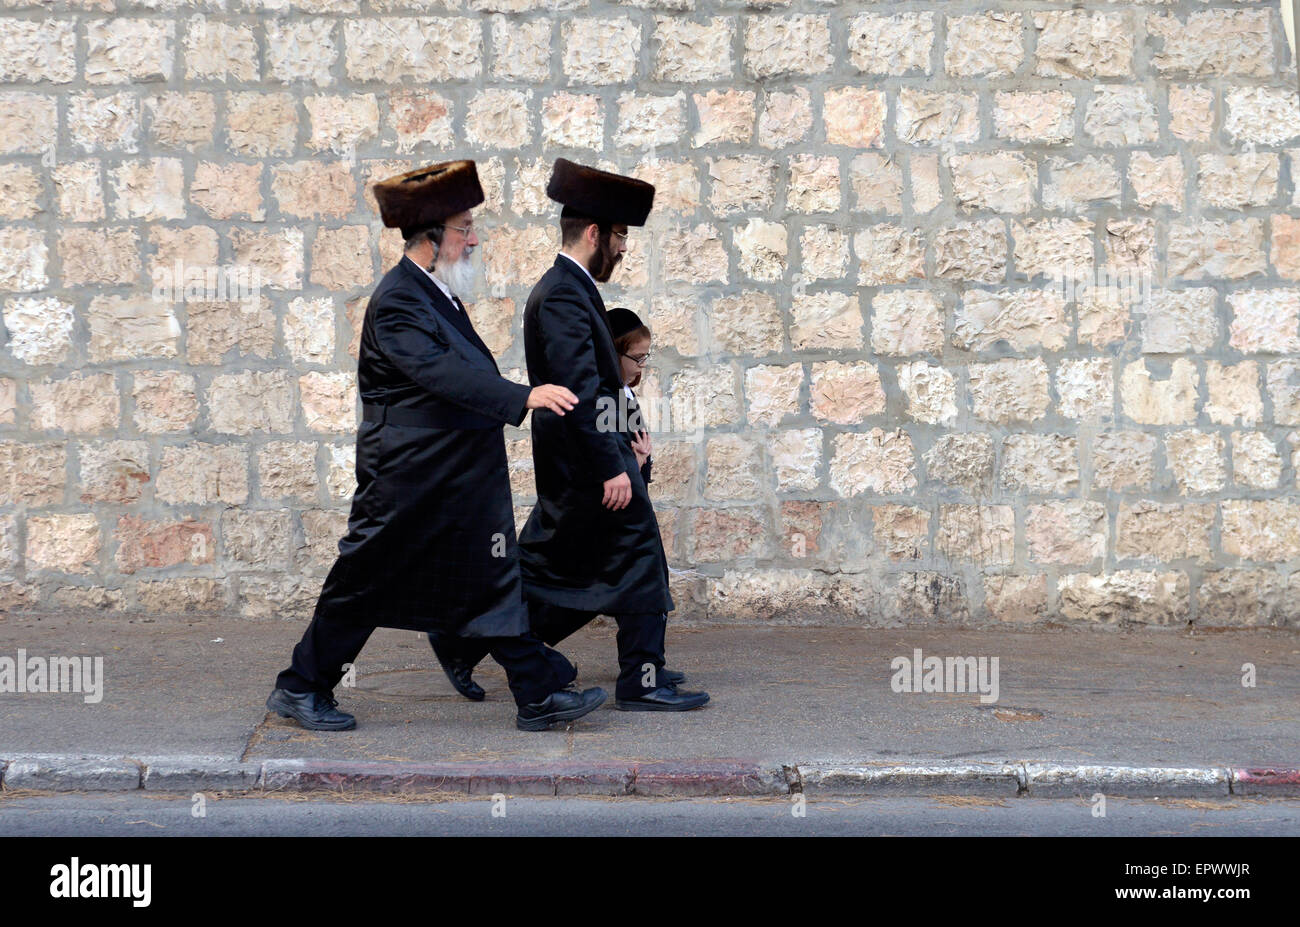 Two Jewish men and a child walking on the street a few days before sukkot or the 'feast of tabernacles - Stock Image